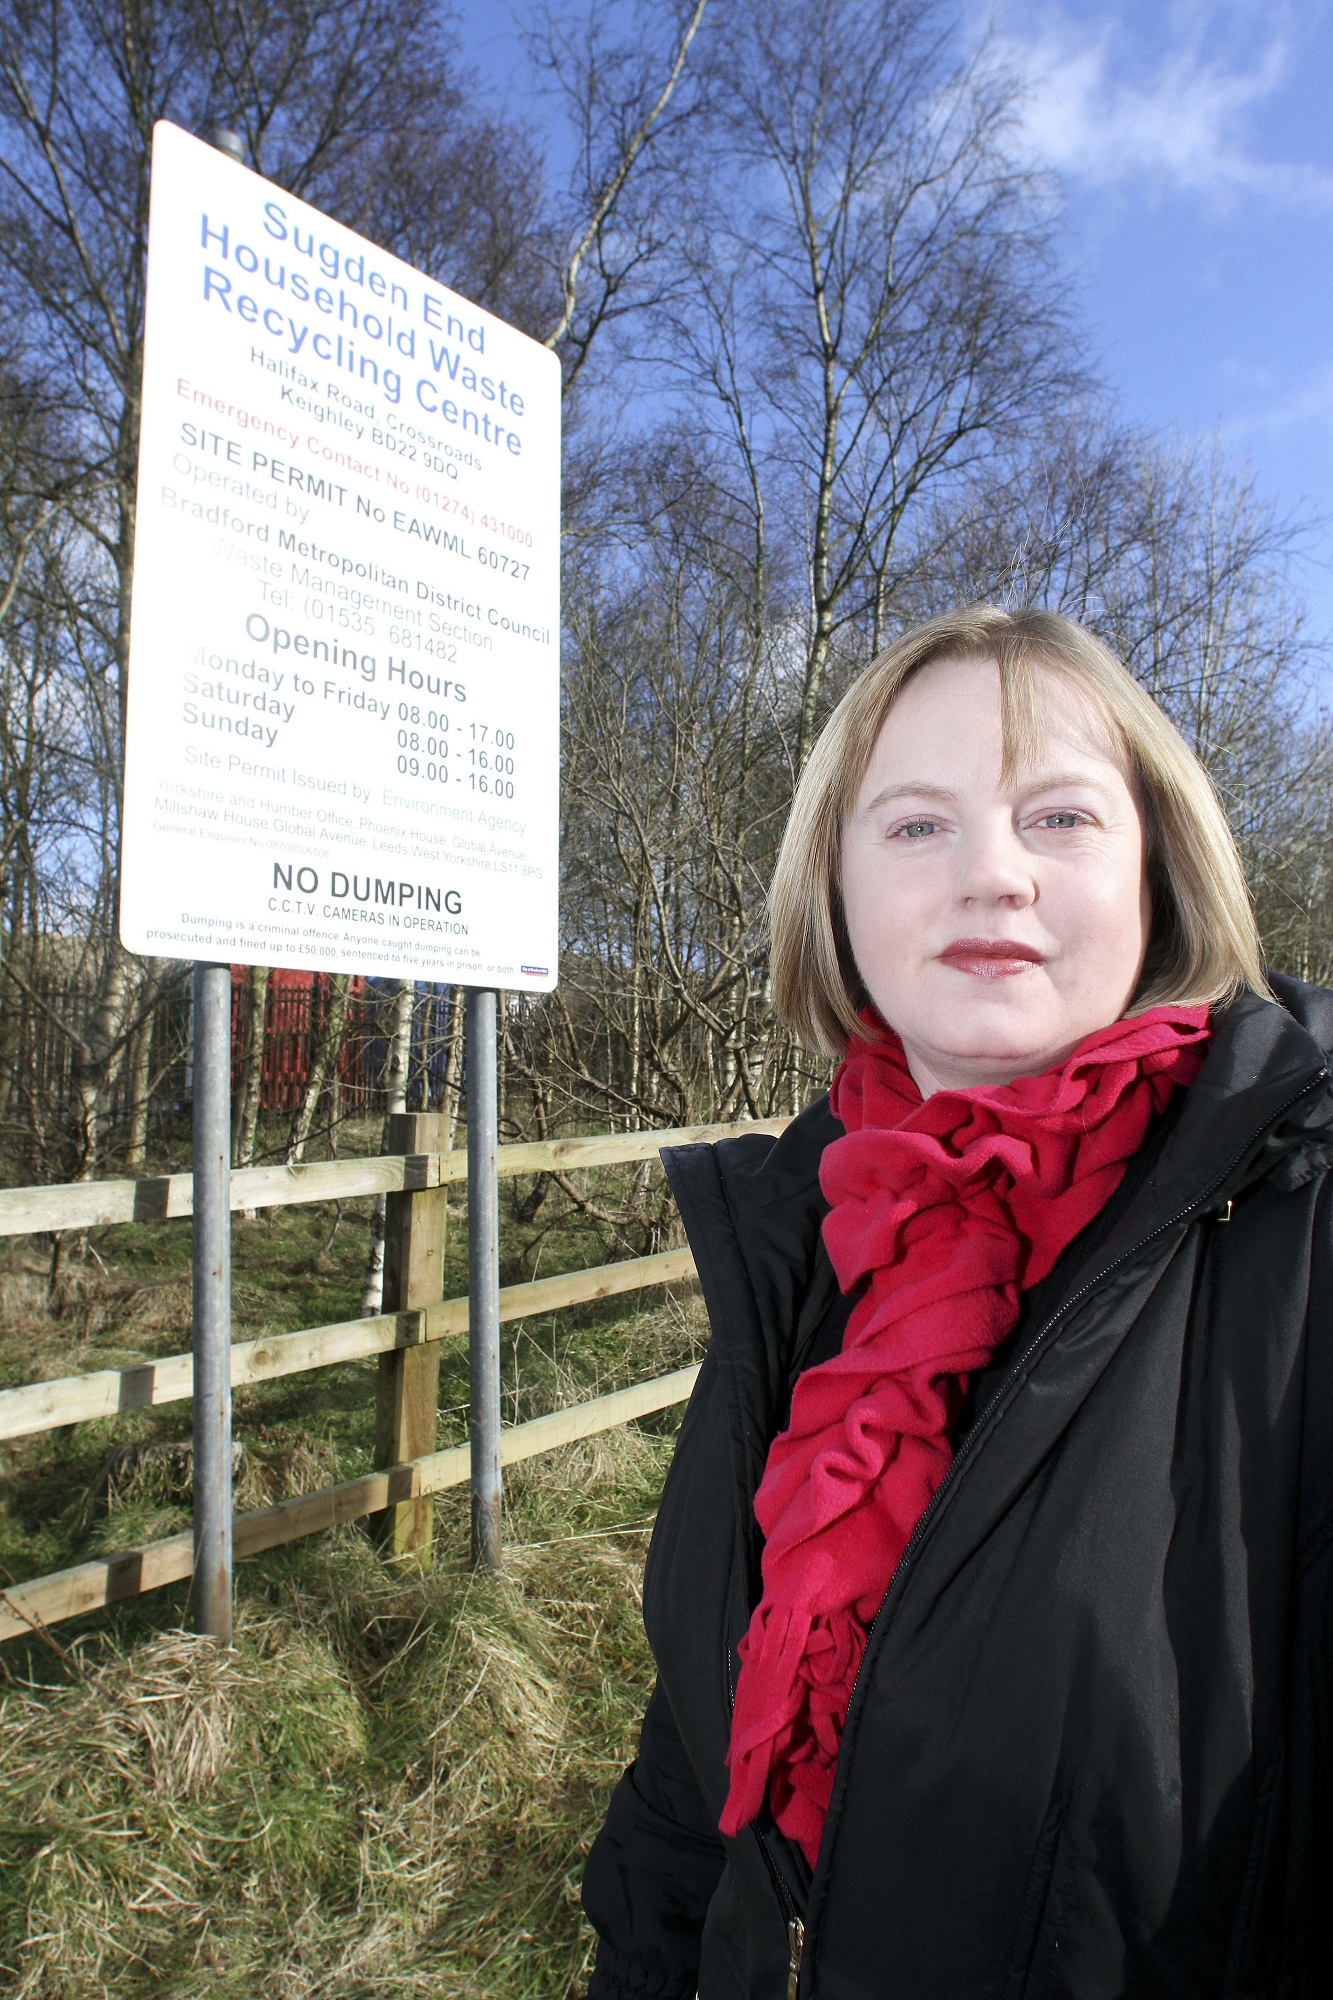 Councillor Rebecca Poulsen, outside the Sugden End household waste-recycling centre